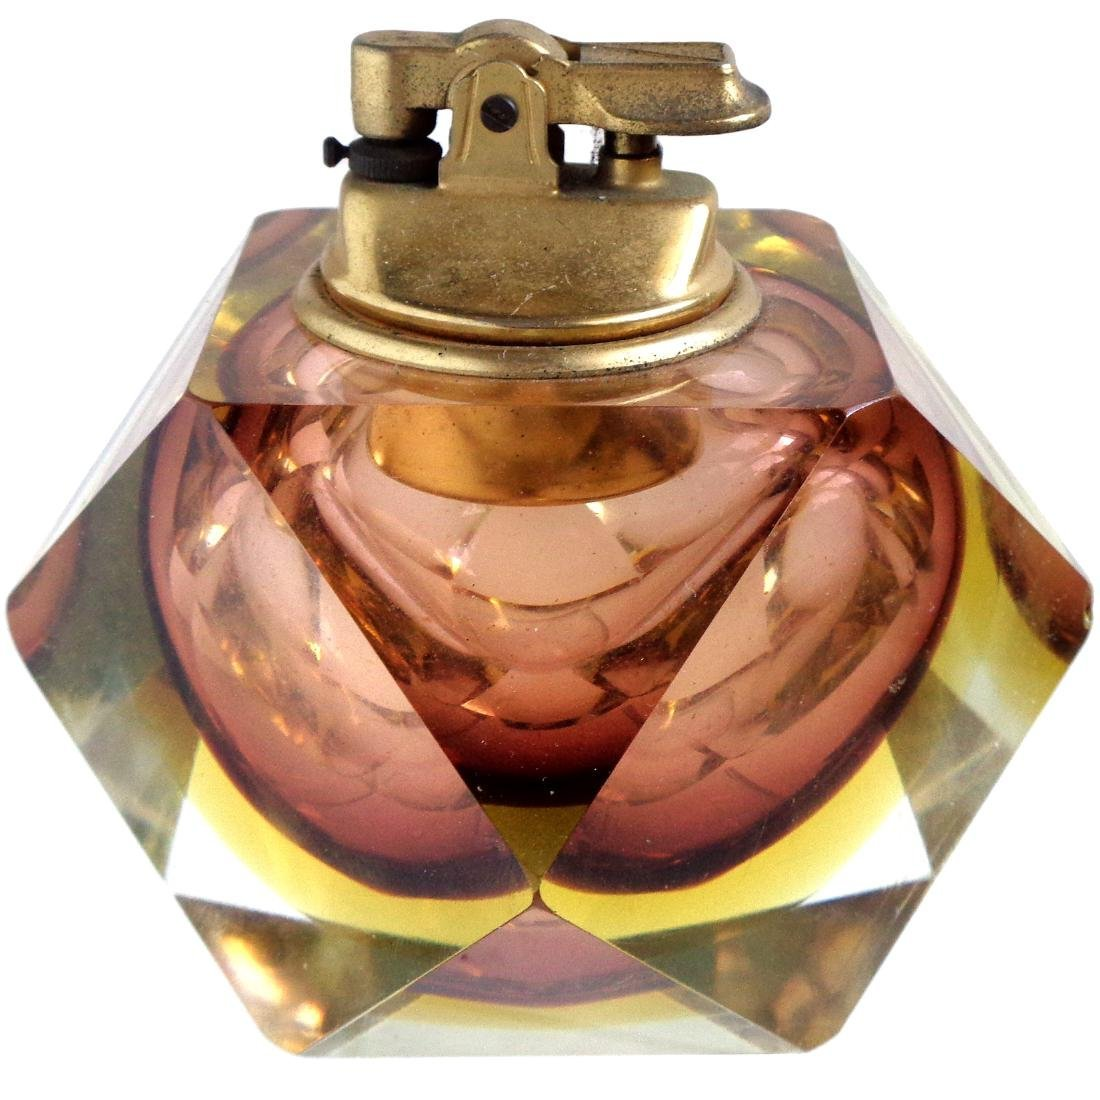 Madruzzato Murano Sommerso Diamond Shape Lighter